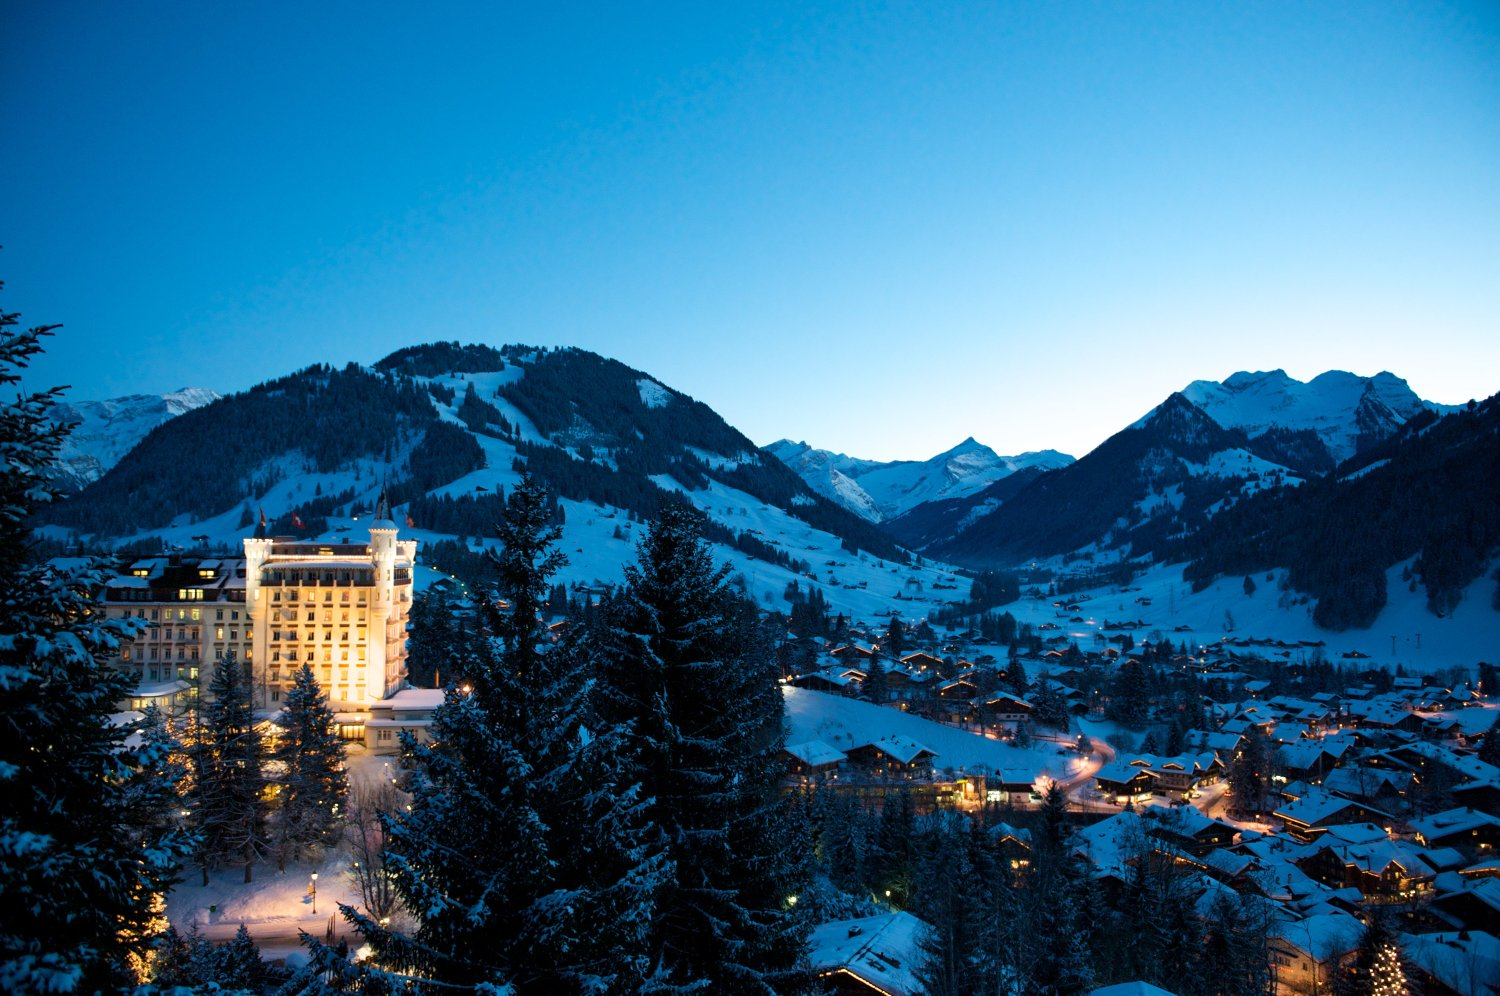 Hotel Palace Gstaad, Gstaad